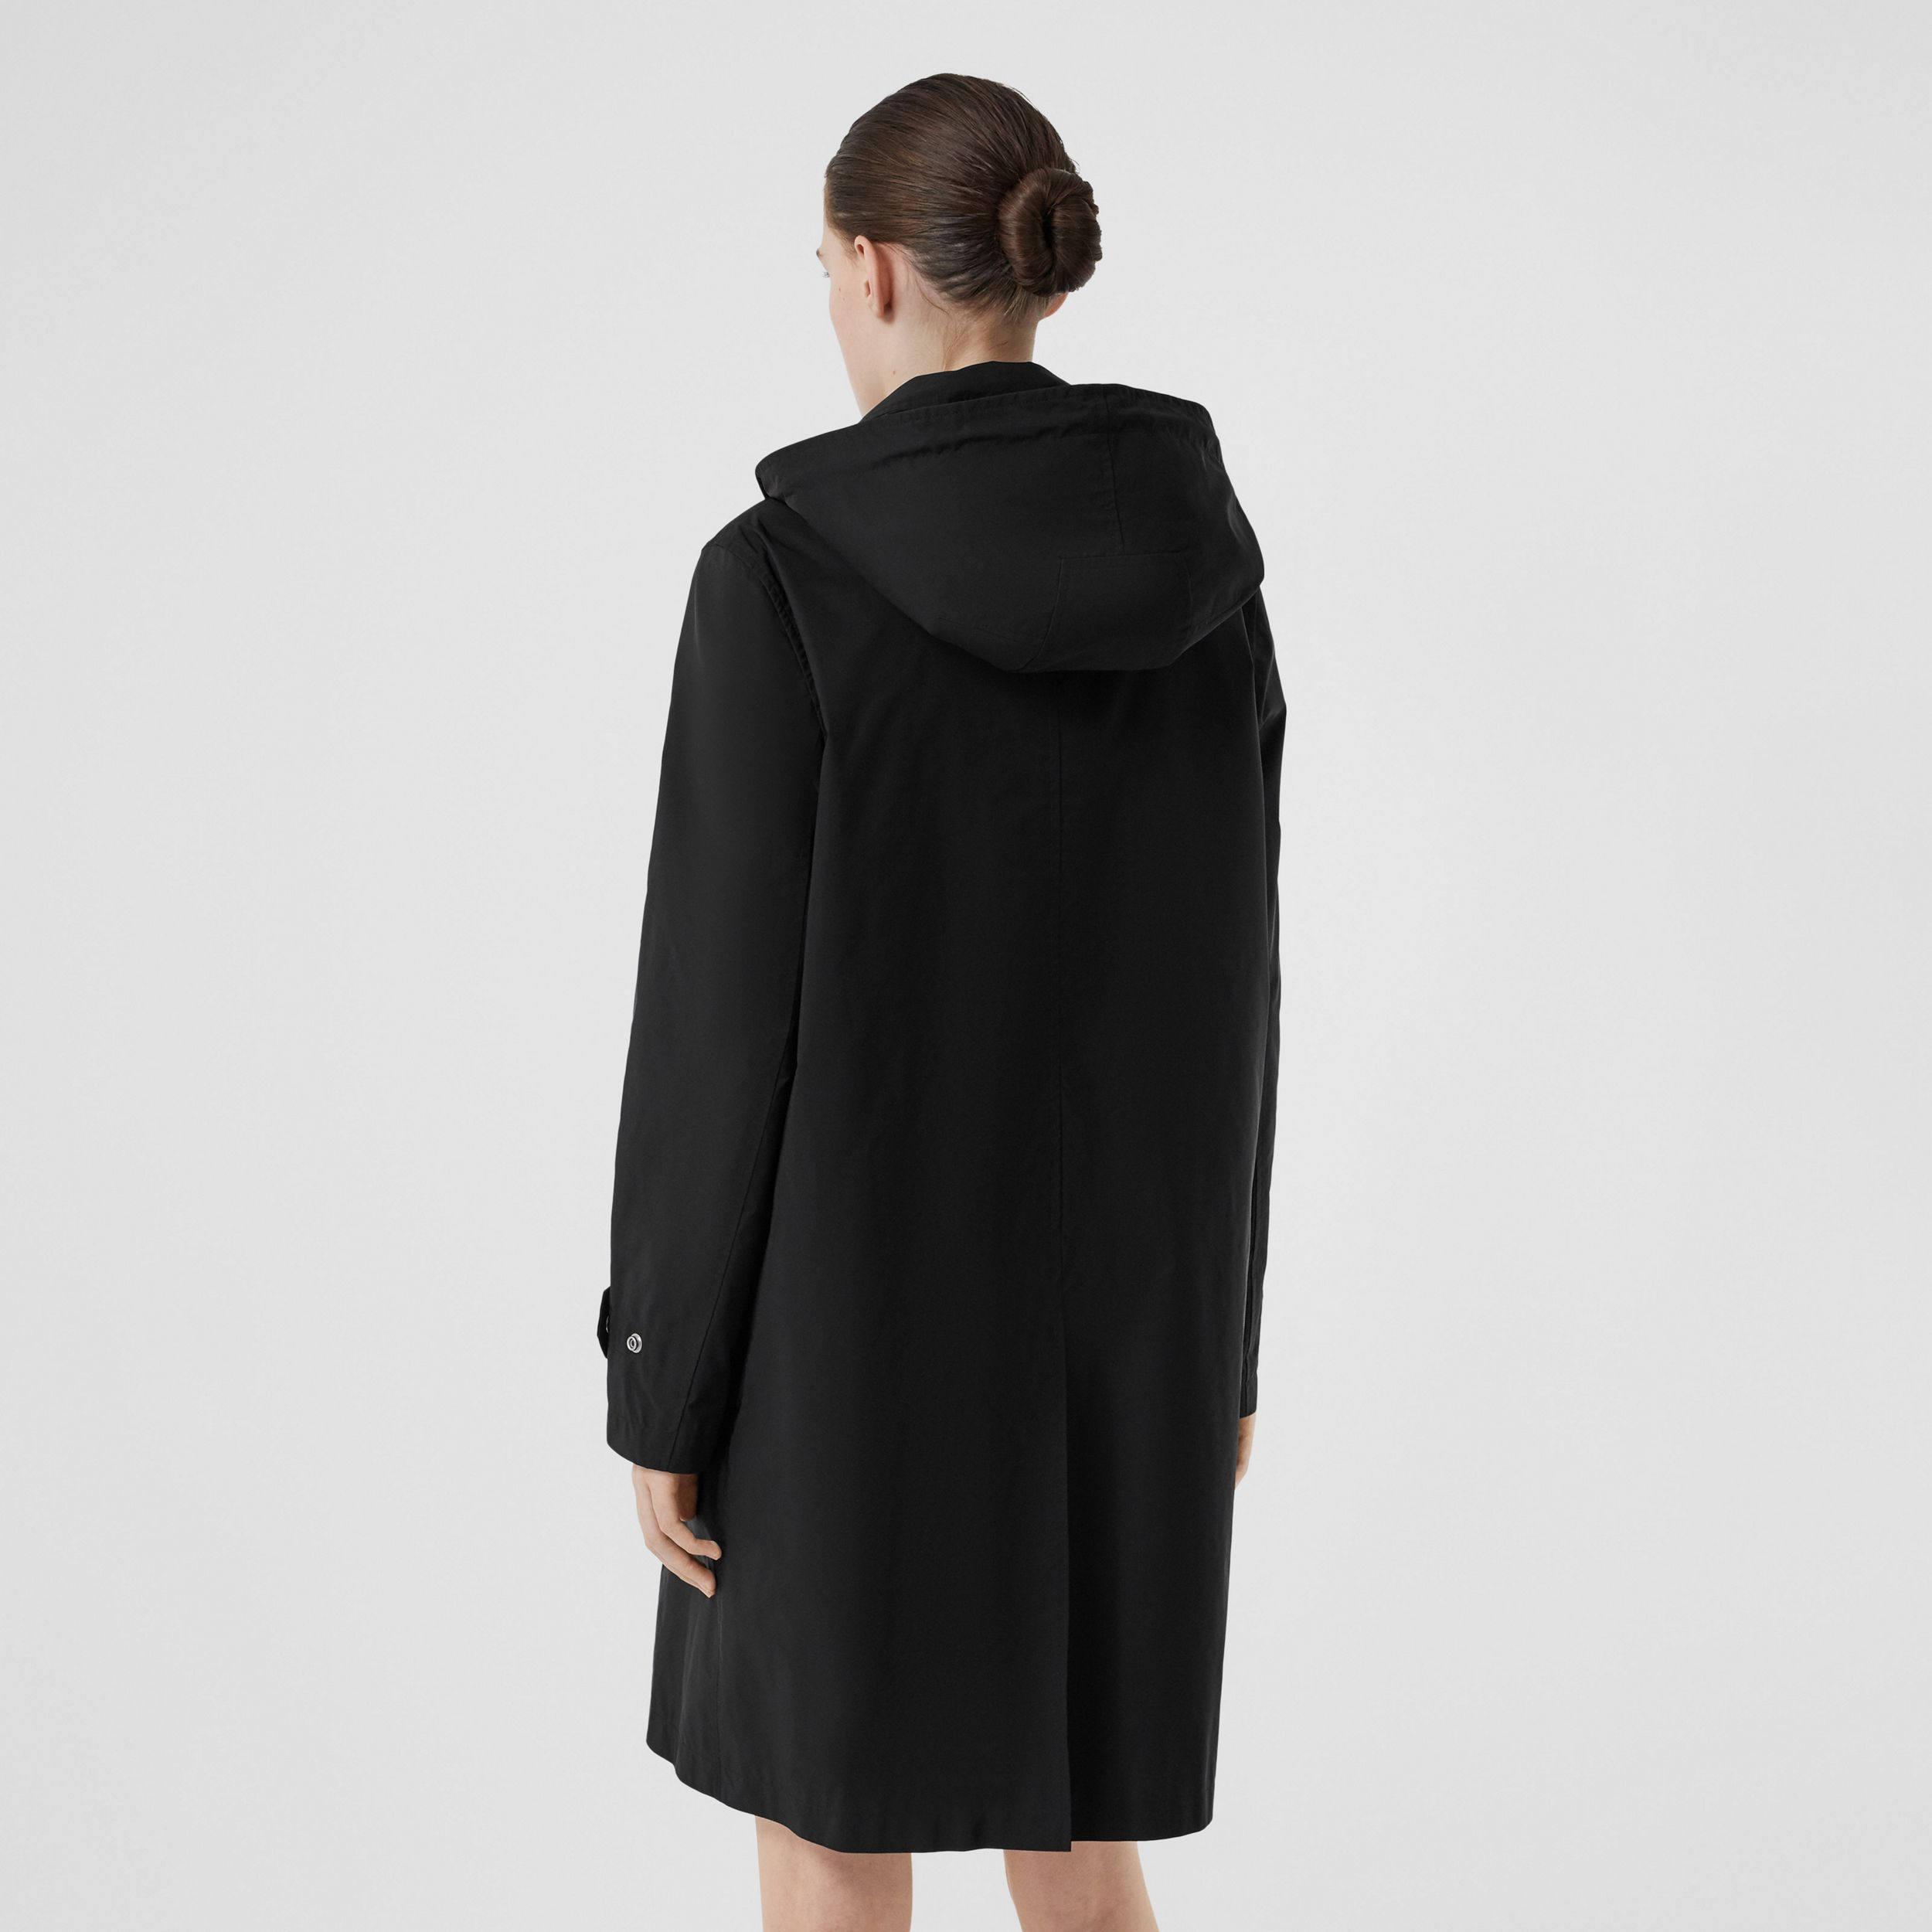 Detachable Hood Shape-memory Taffeta Car Coat in Black - Women | Burberry - 3